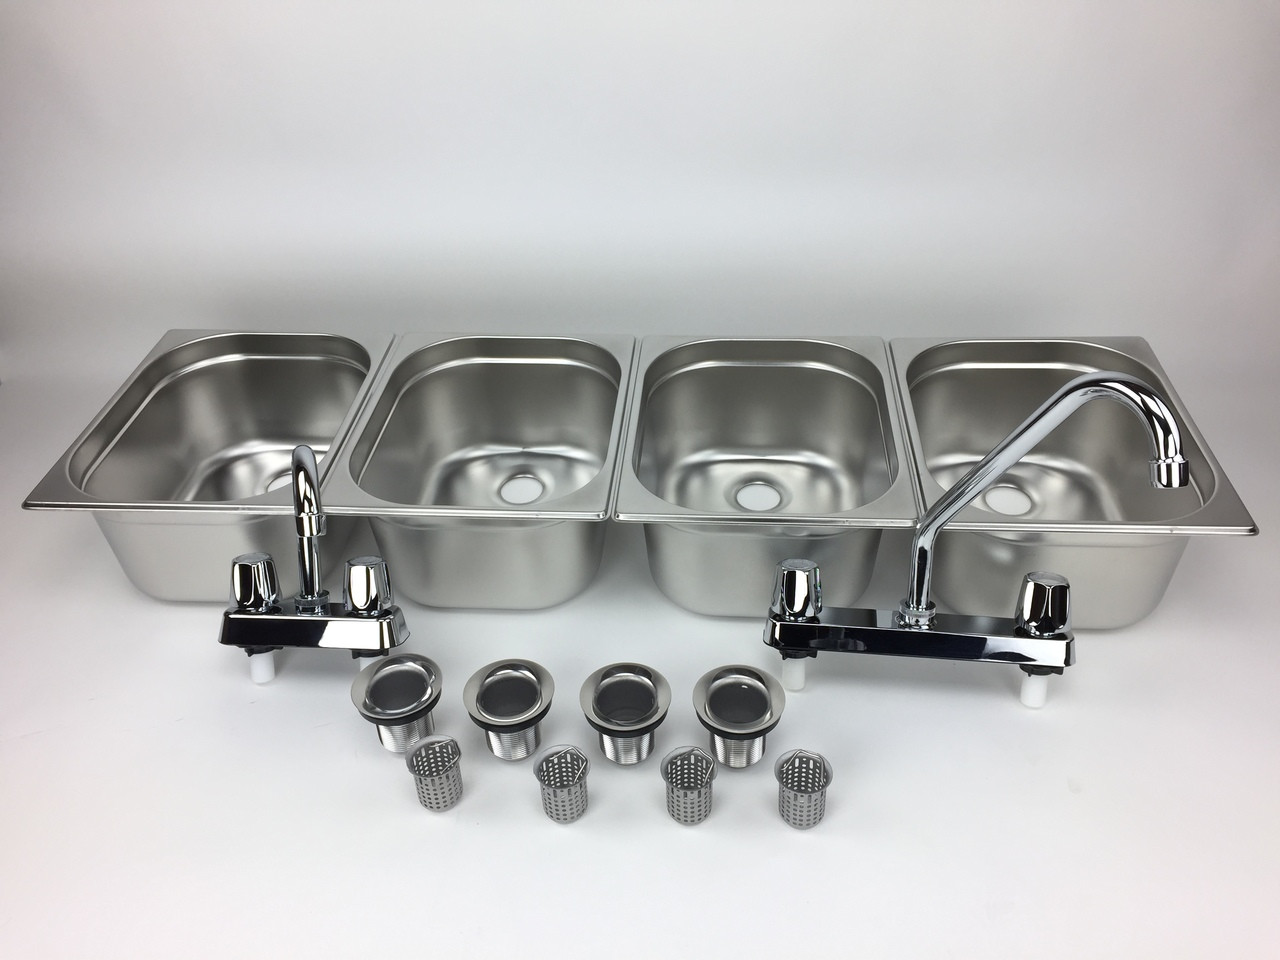 4 basin sink with faucets and drains  front view